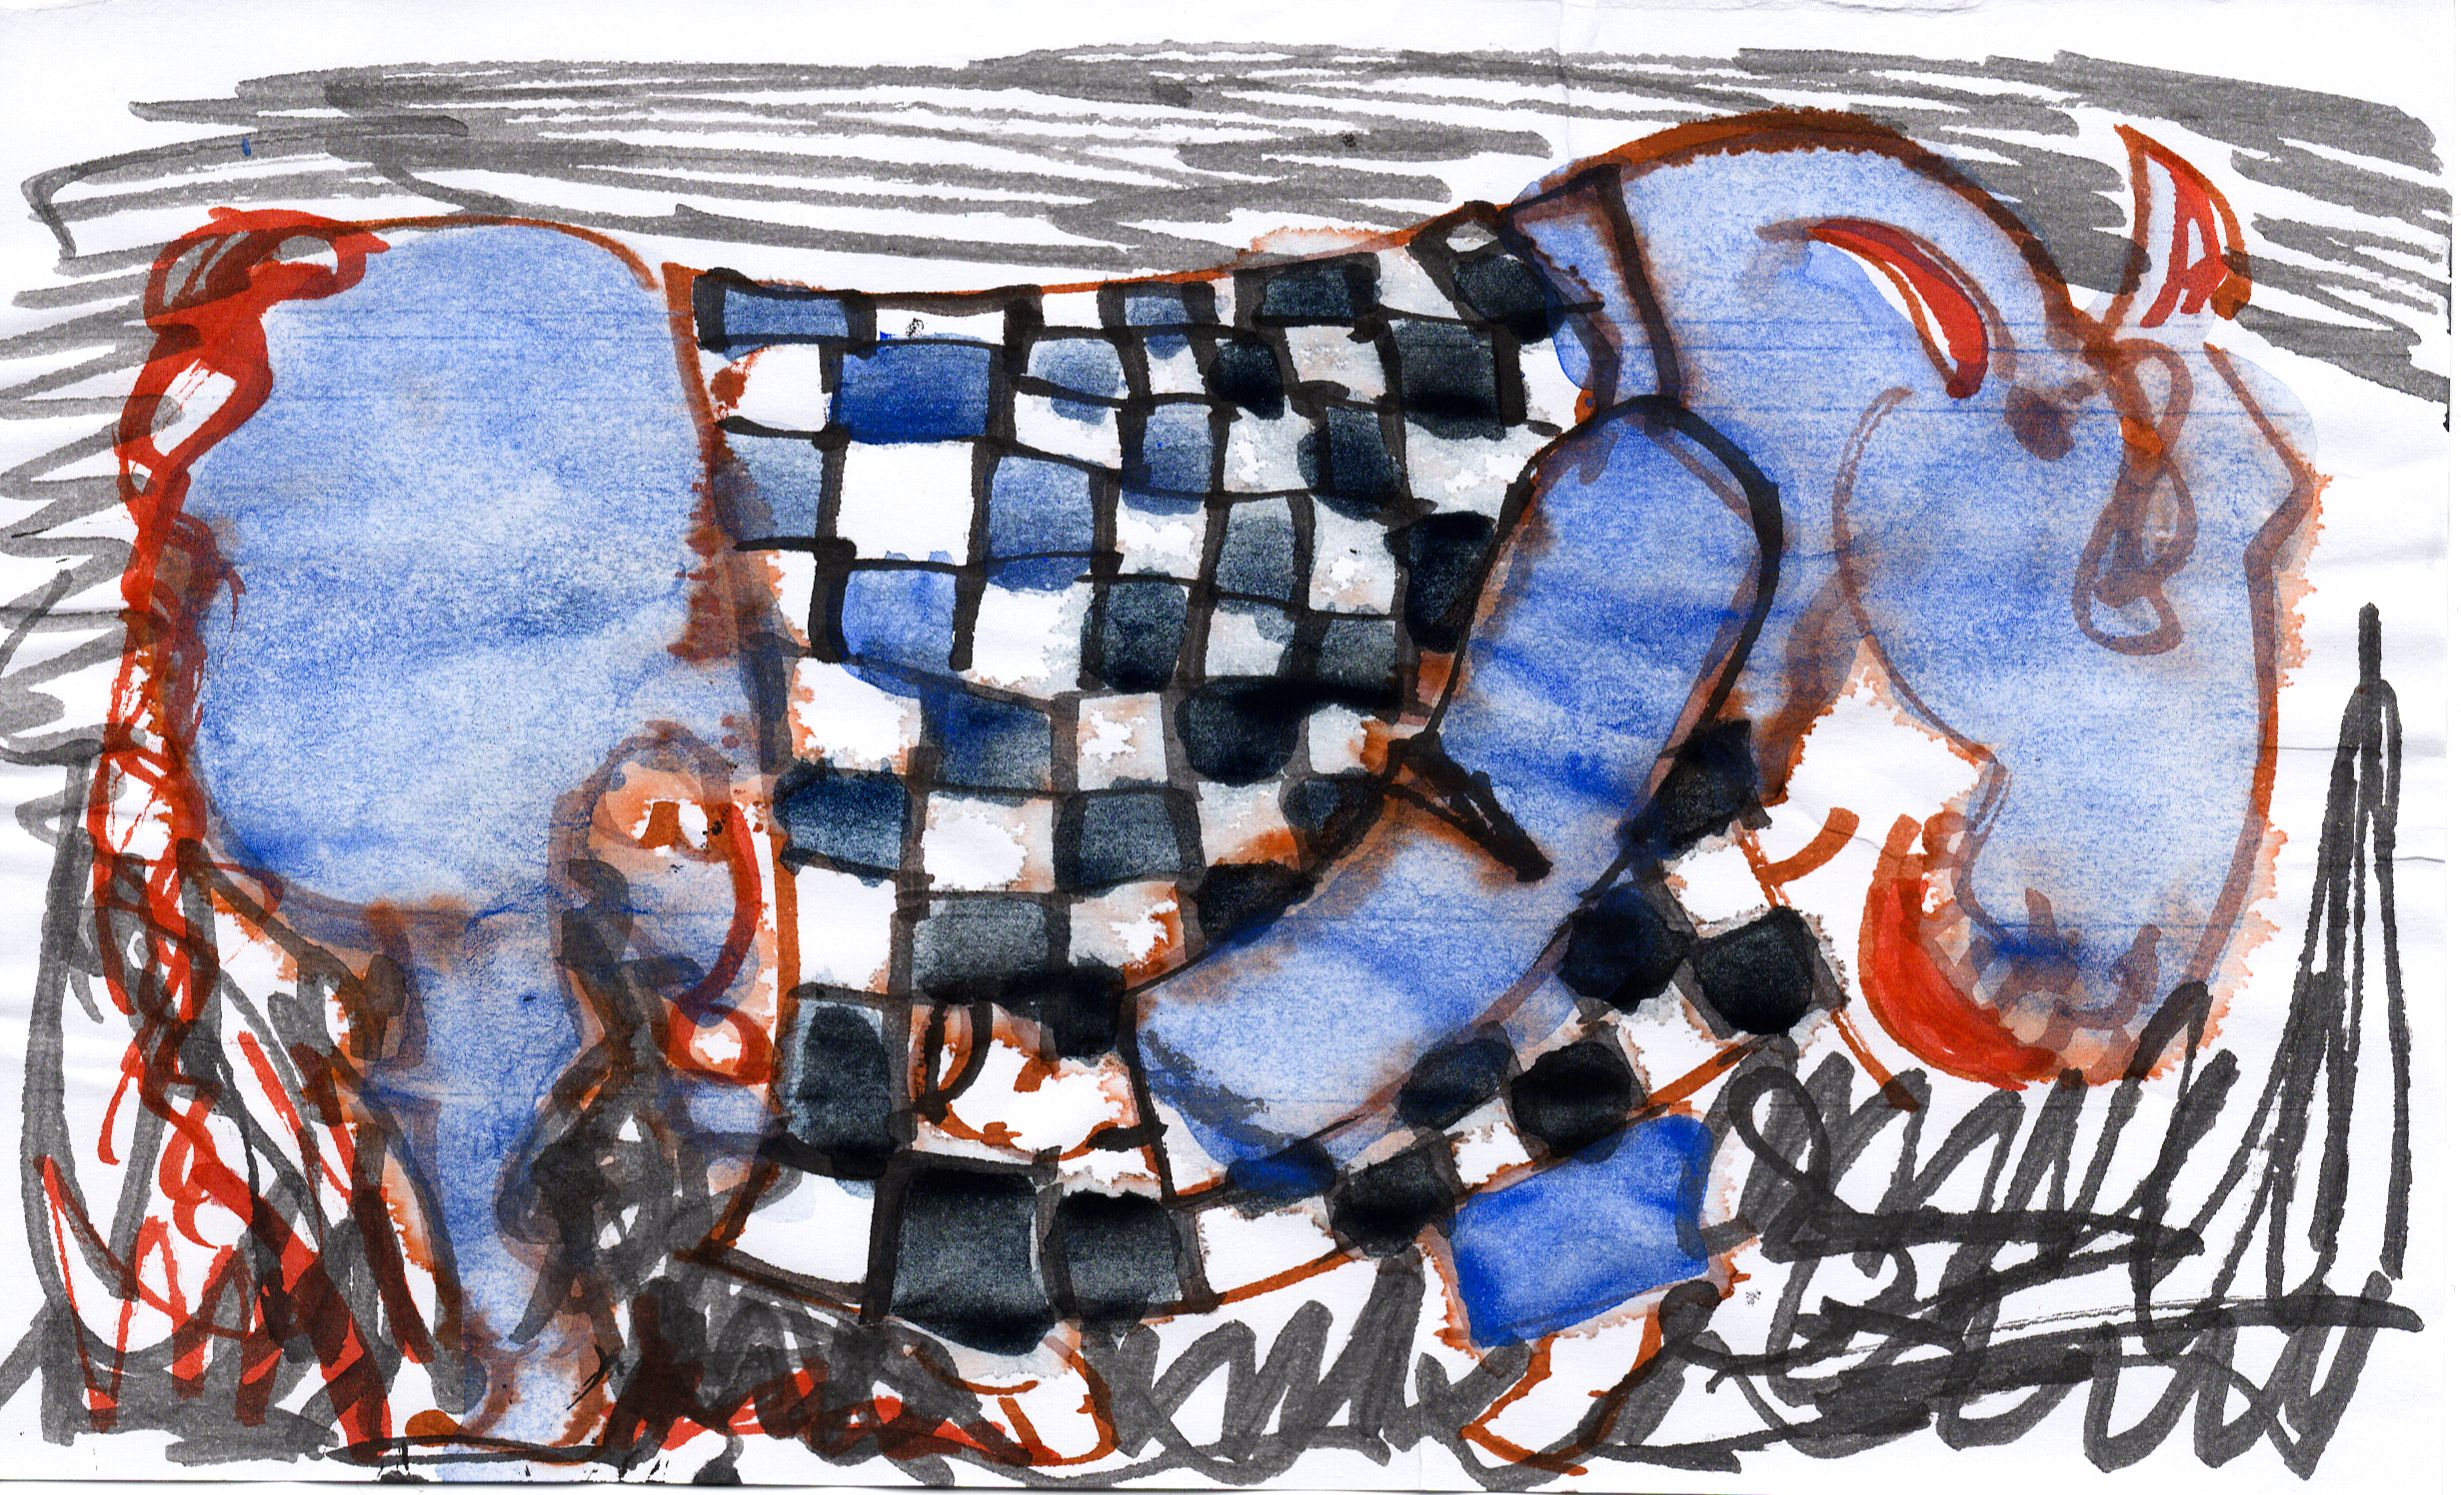 drawing_2012_horse (8 of 20).jpg